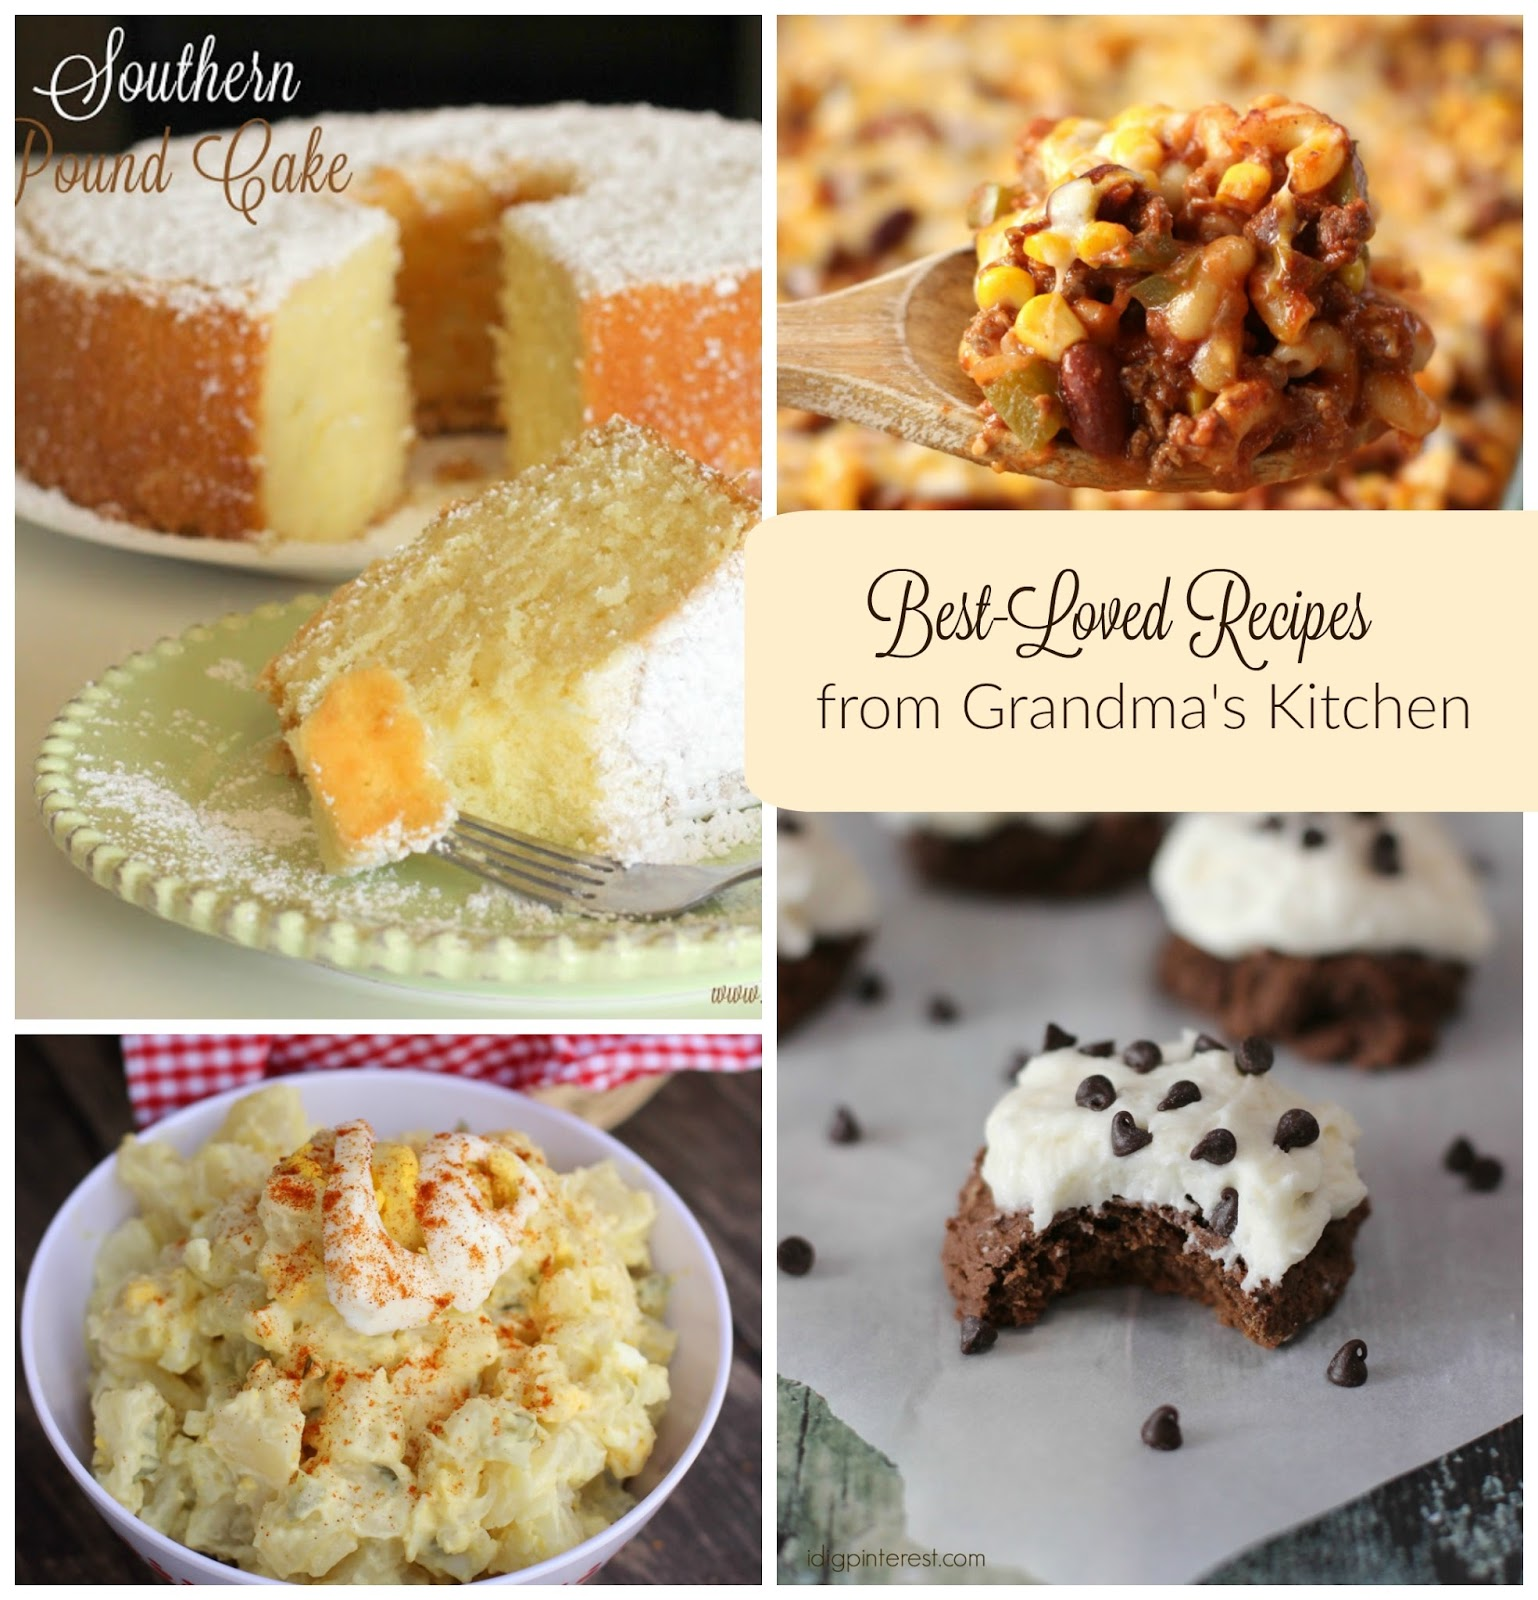 Grandmothers Kitchen: Best-Loved Recipes From Grandma's Kitchen